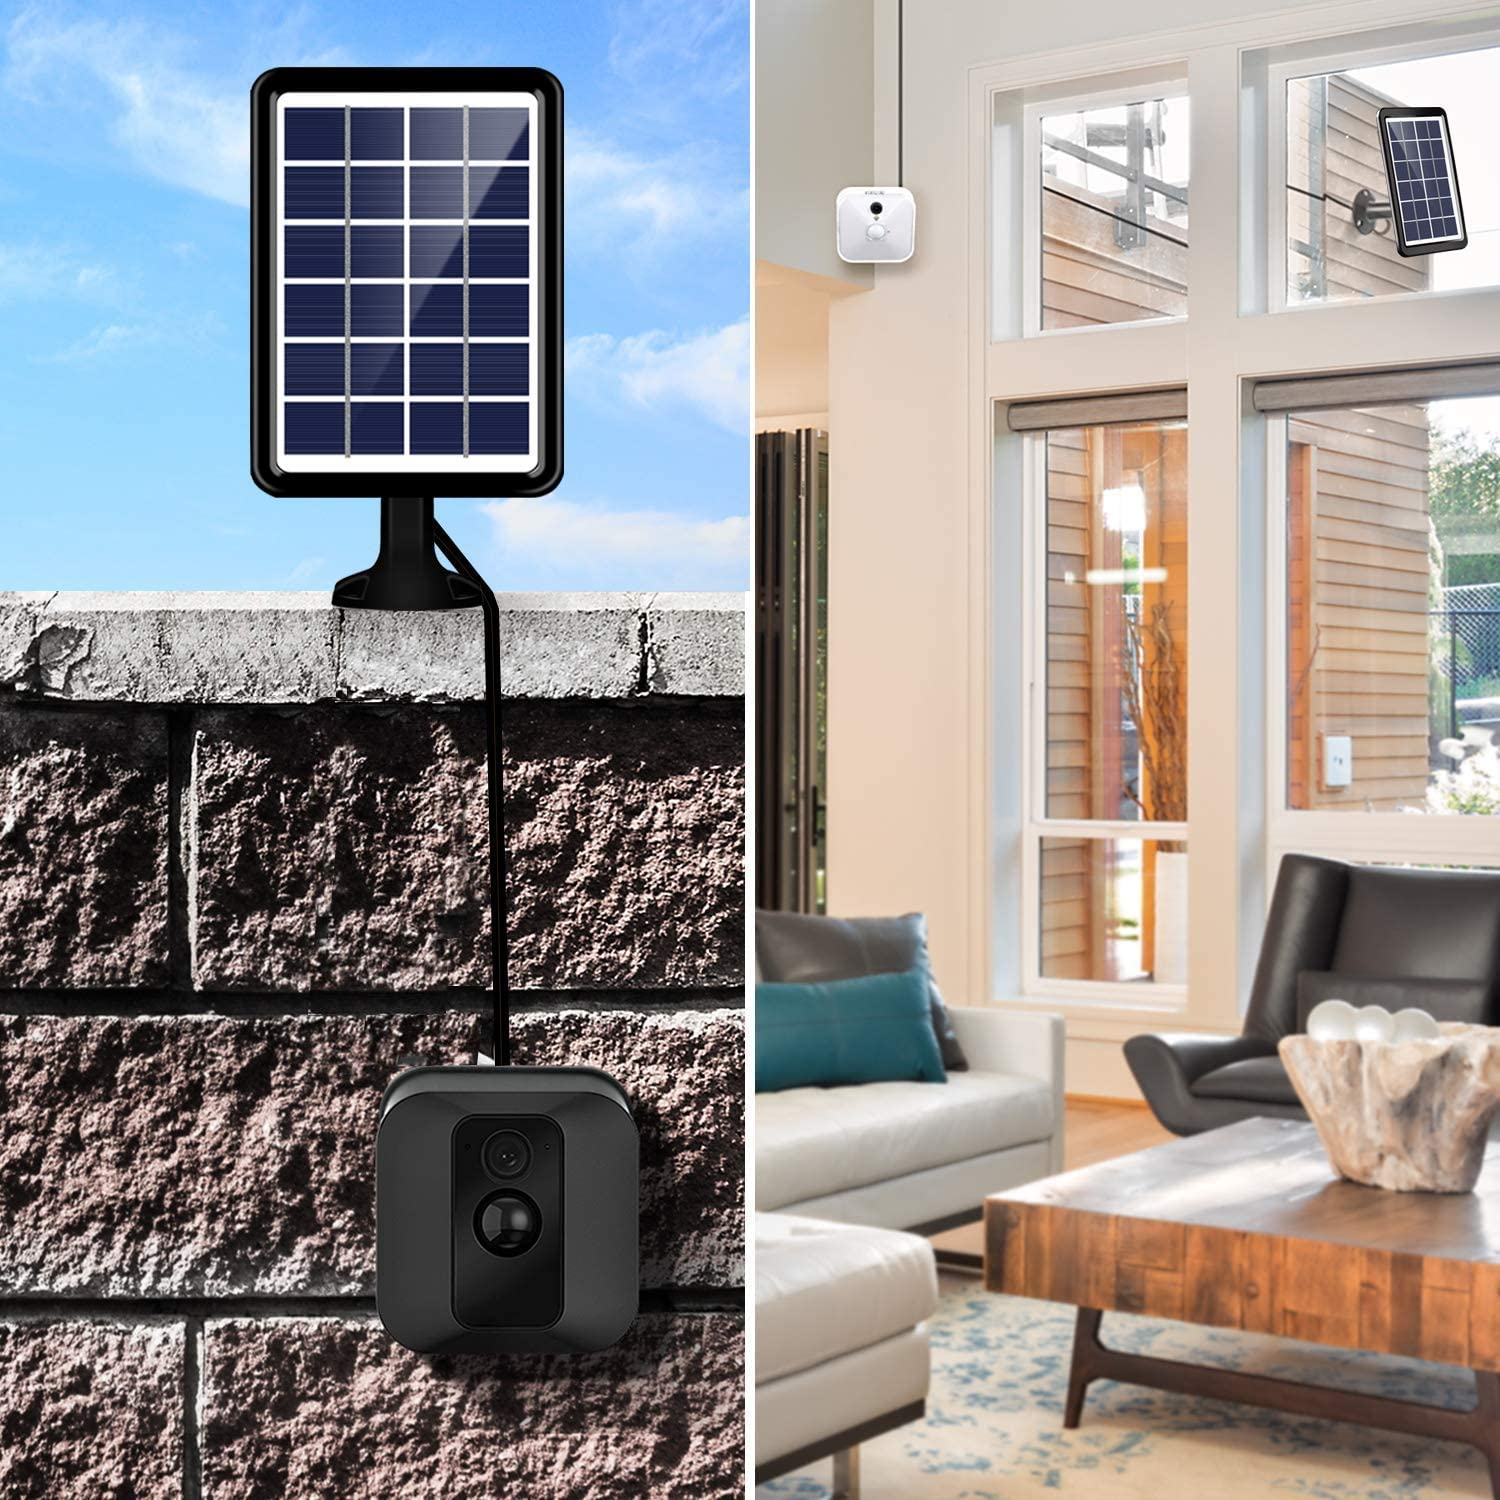 Taken Adjustable Mount Bracket with Internal Battery Solar Panel Compatible with Blink XT2//XT Outdoor Camera Black 10ft//3m Weatherproof Cable to Continuously Charge XT2//XT Camera